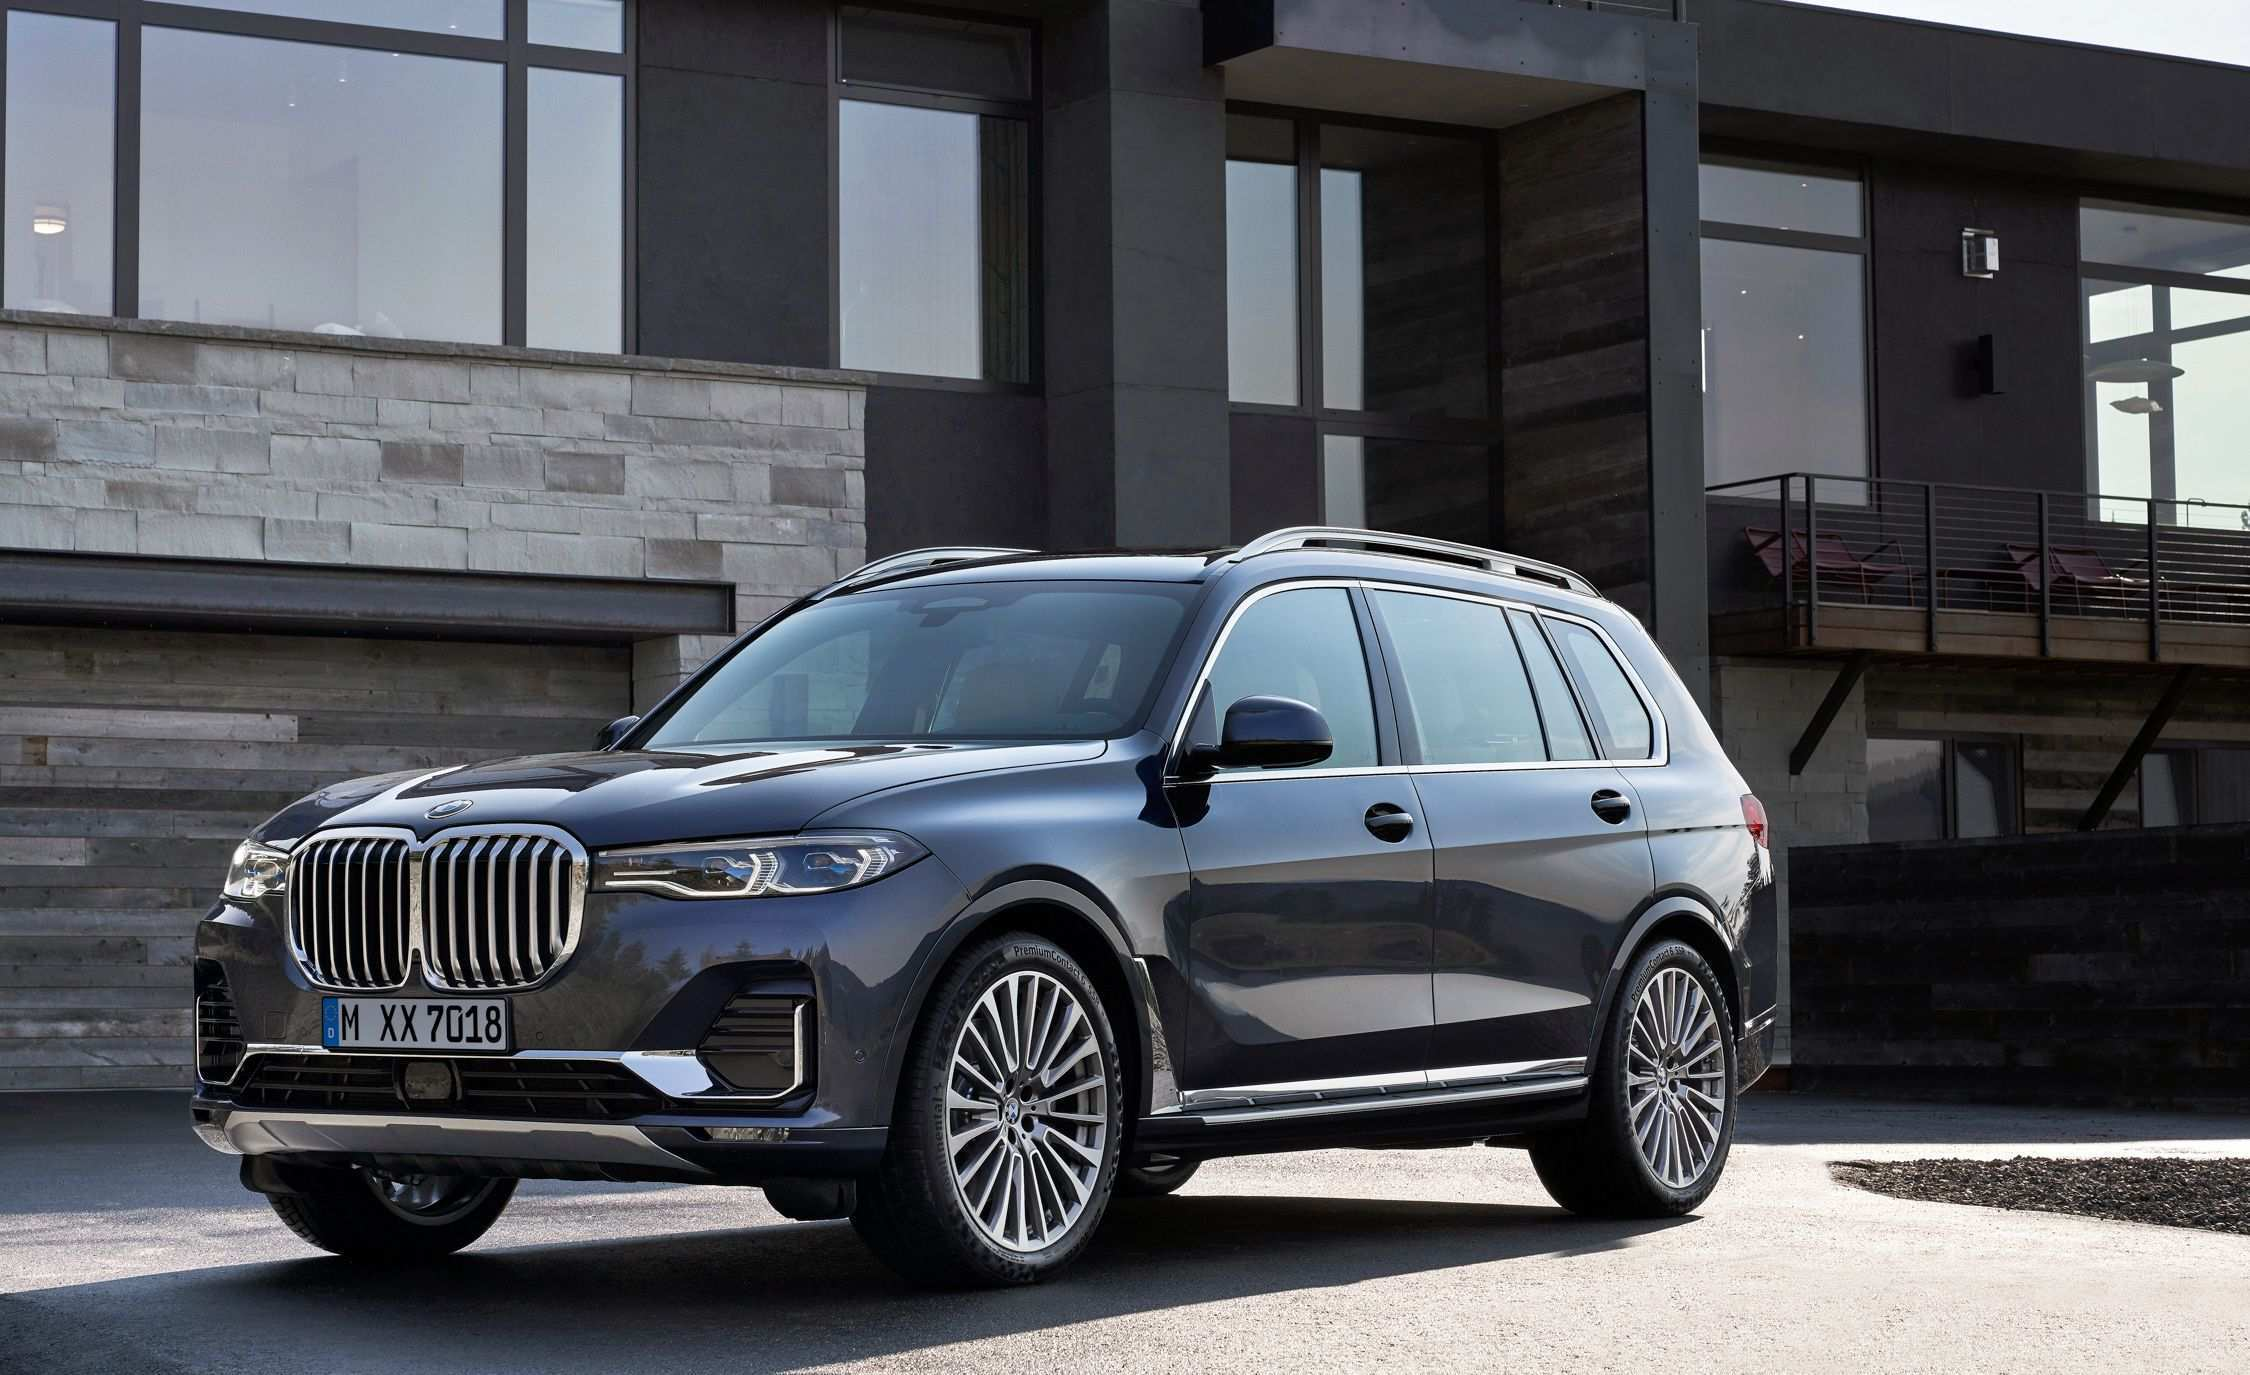 37 New The Bmw Year 2019 Price And Review Reviews for The Bmw Year 2019 Price And Review